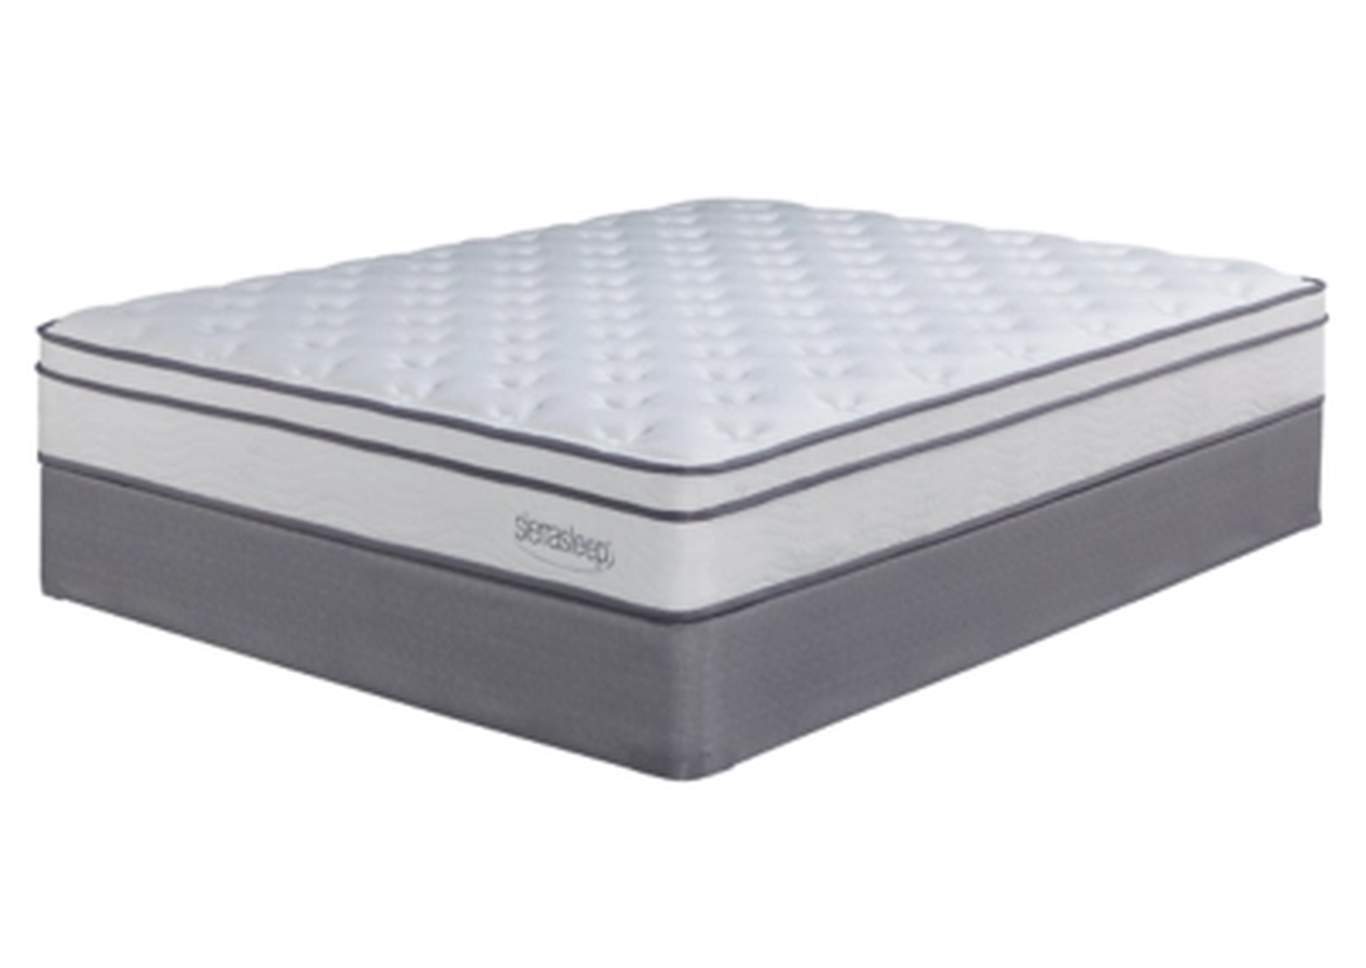 Longs Peak Limited White King Mattress w/Foundation,Sierra Sleep by Ashley